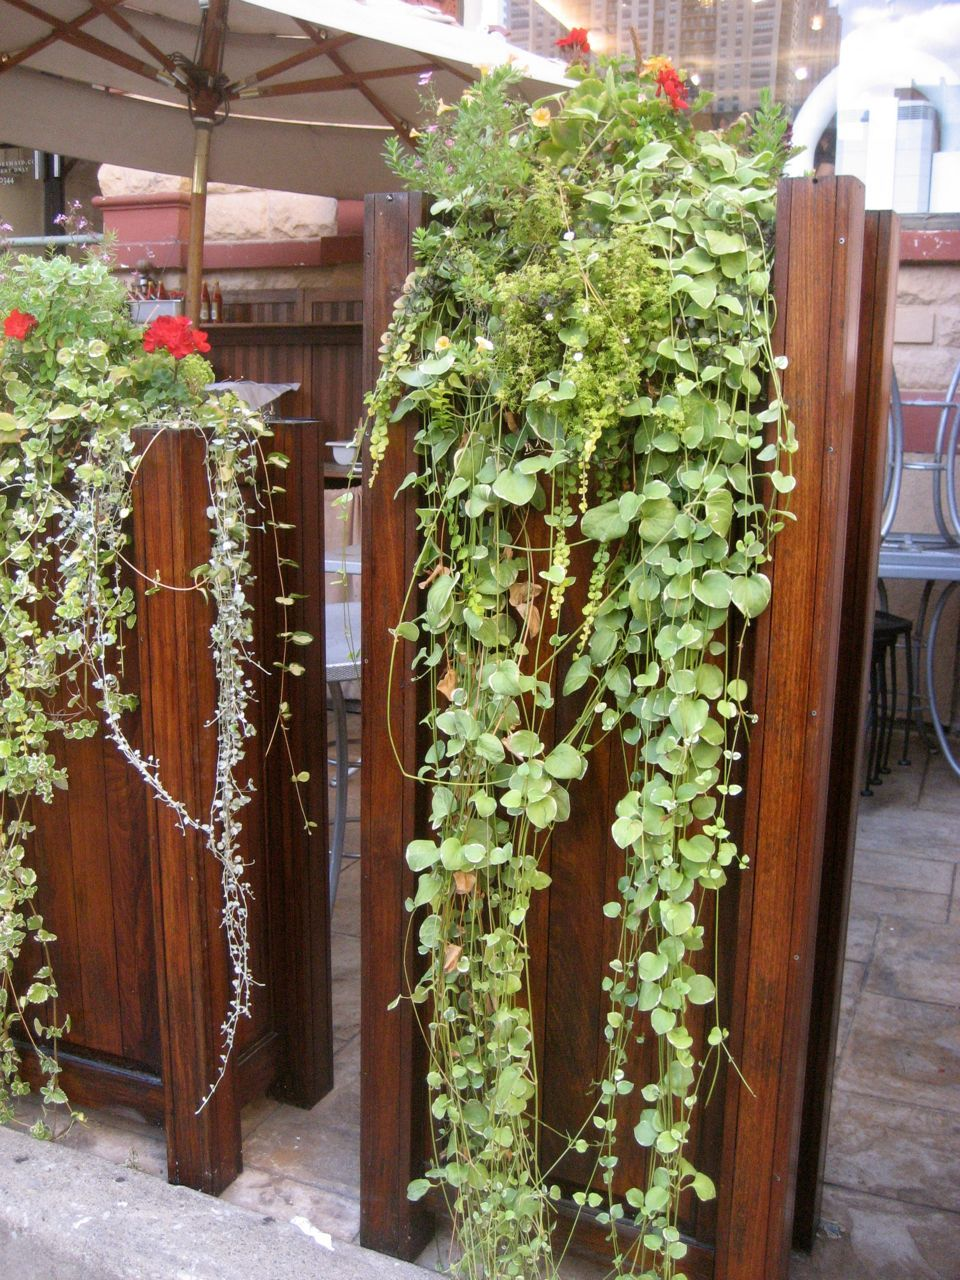 Vertical Ve able Gardening Ideas